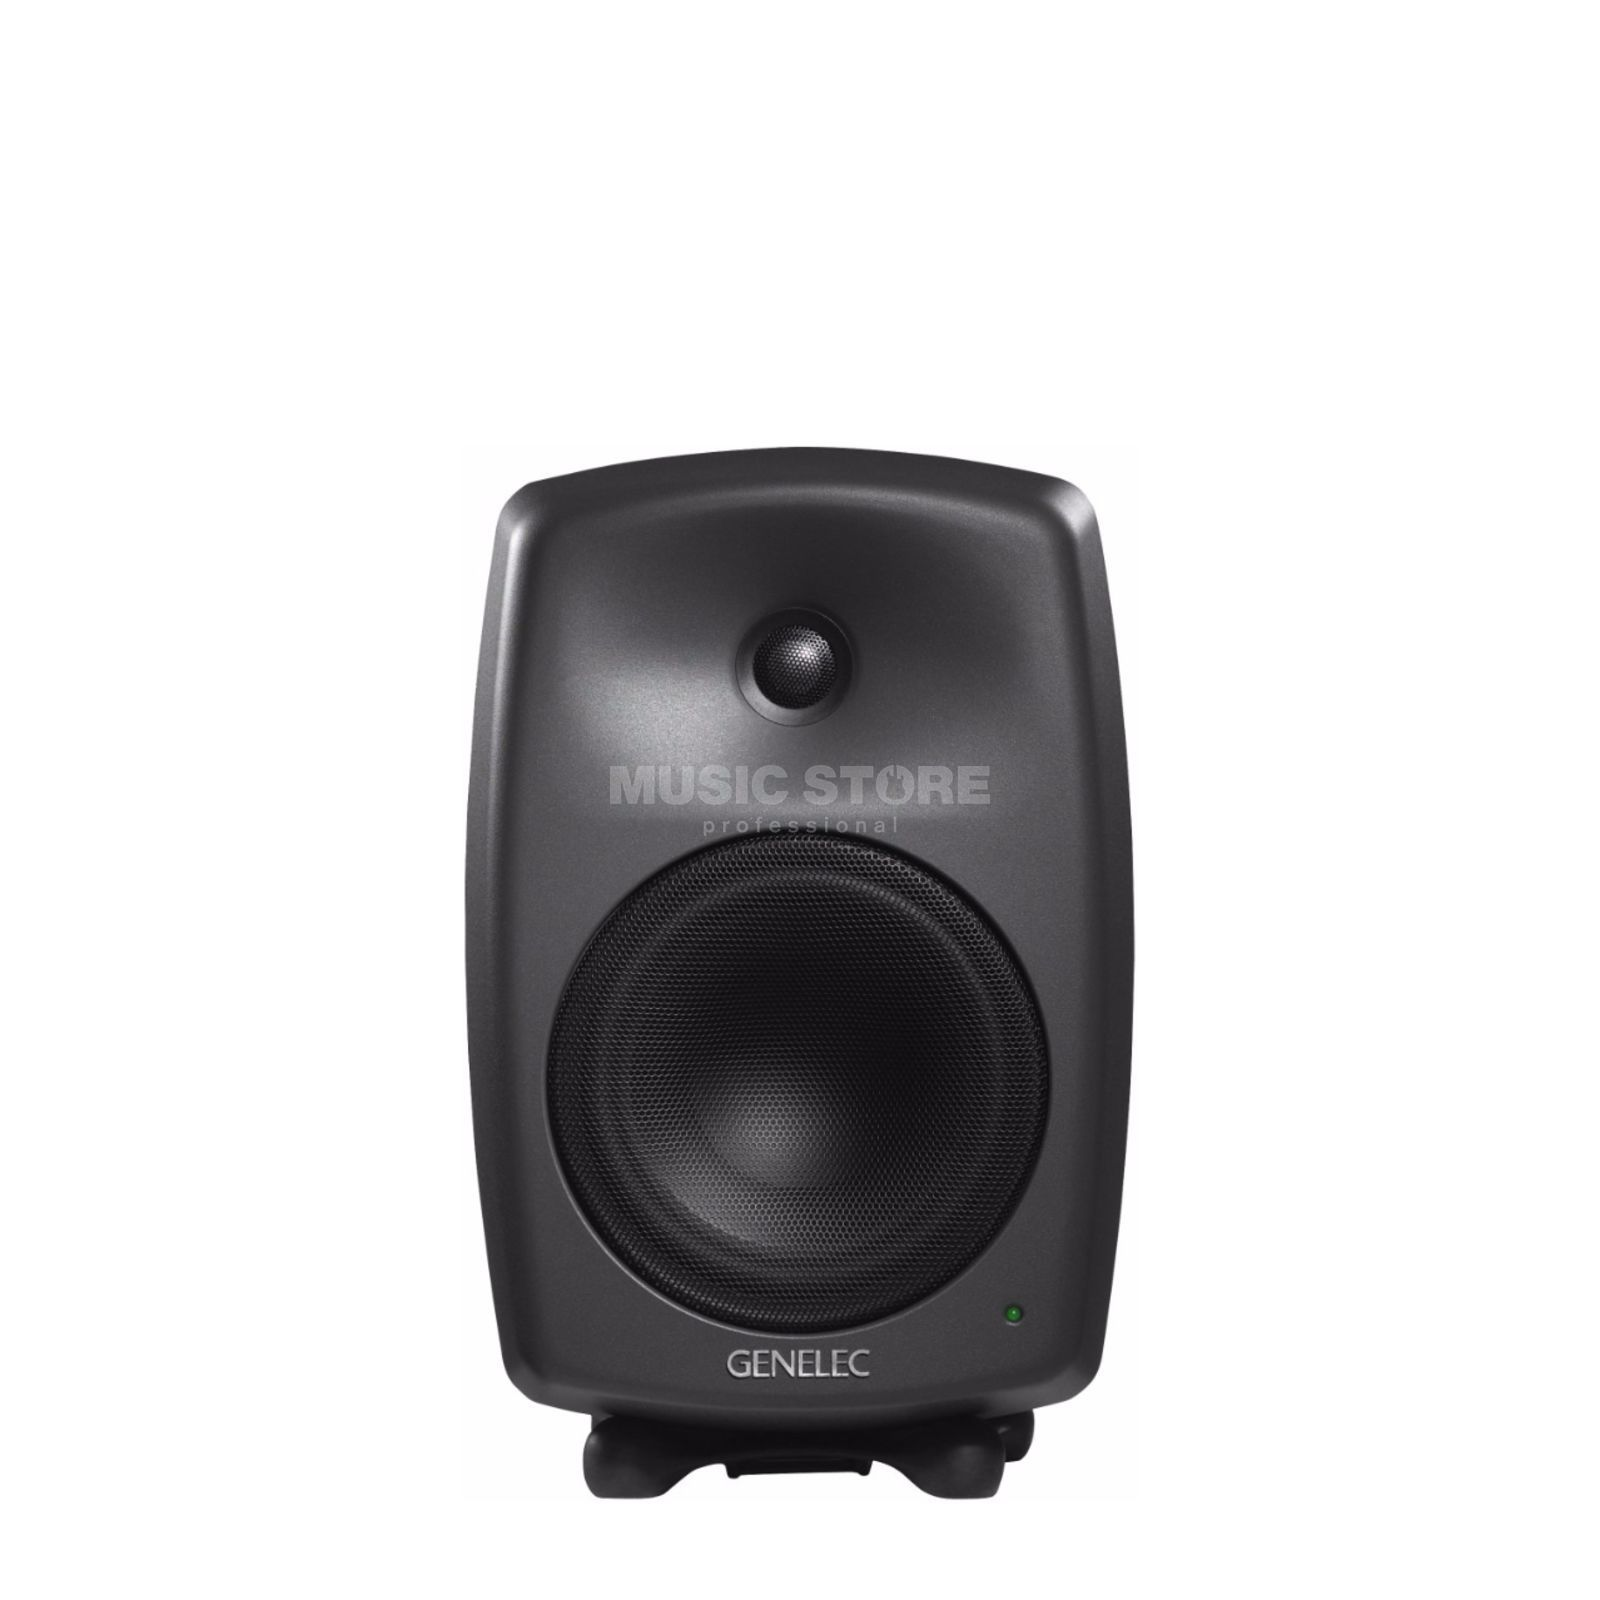 Genelec 8040BPM Compact 2-Way Active Monitor Speaker, Black Produktbillede